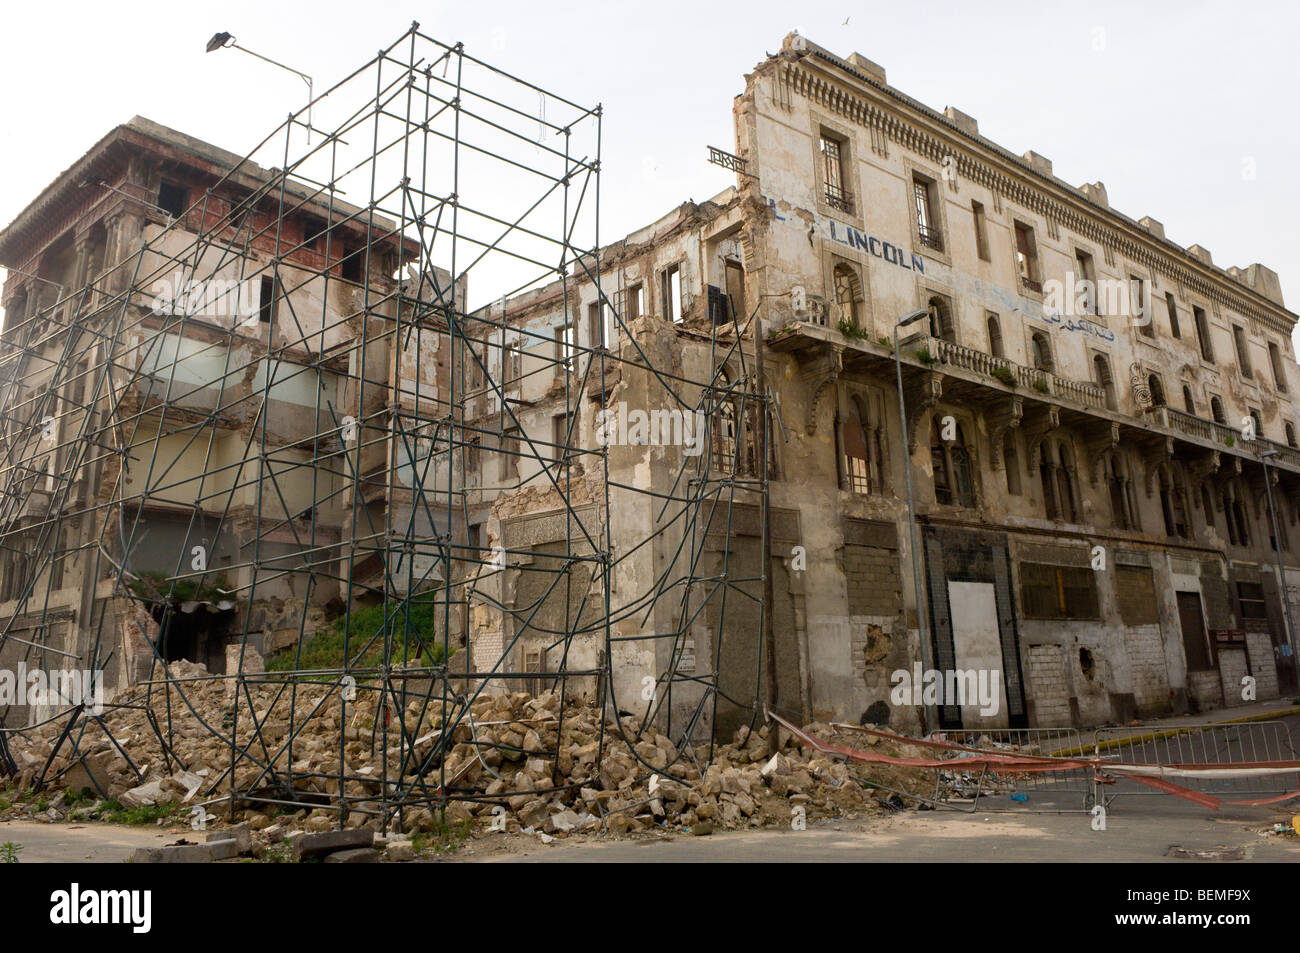 Hotel building collapsed through neglect, Casablanca, Morocco, Africa - Stock Image